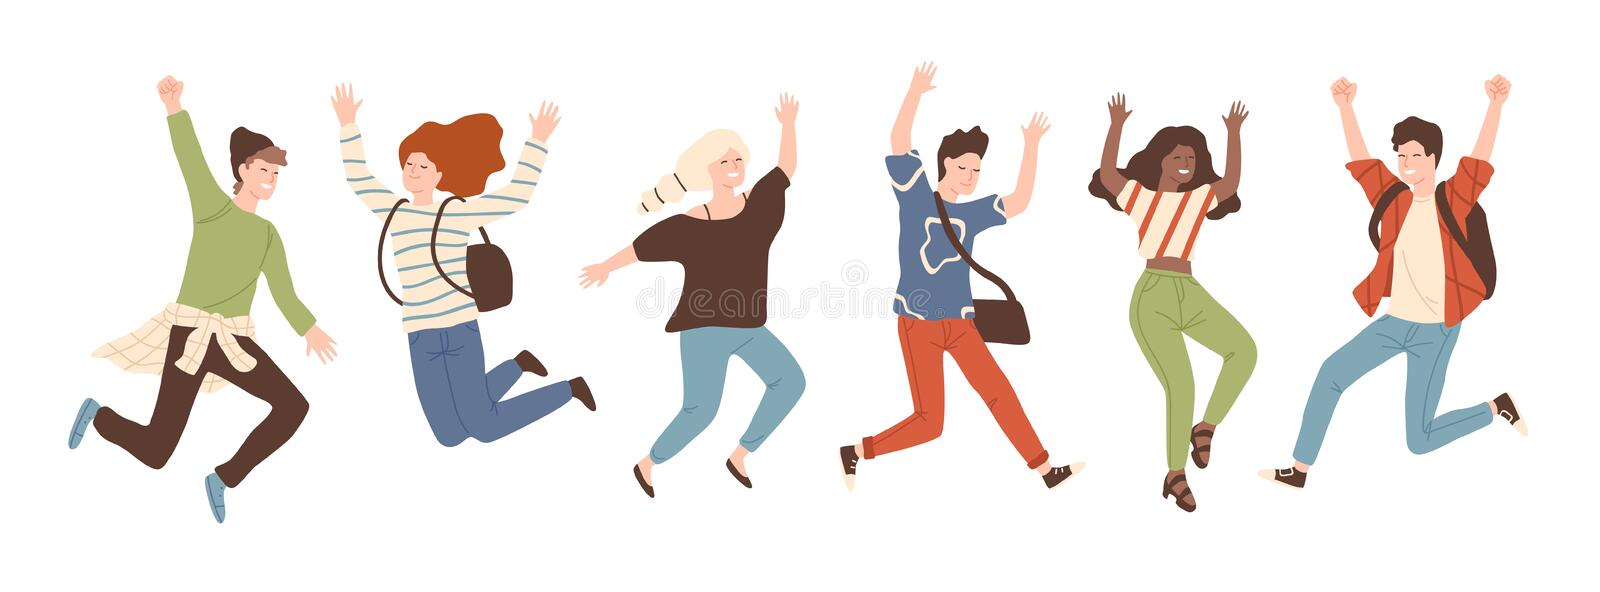 Group of young joyful laughing people jumping with raised hands isolated on white background. Happy positive young men royalty free illustration